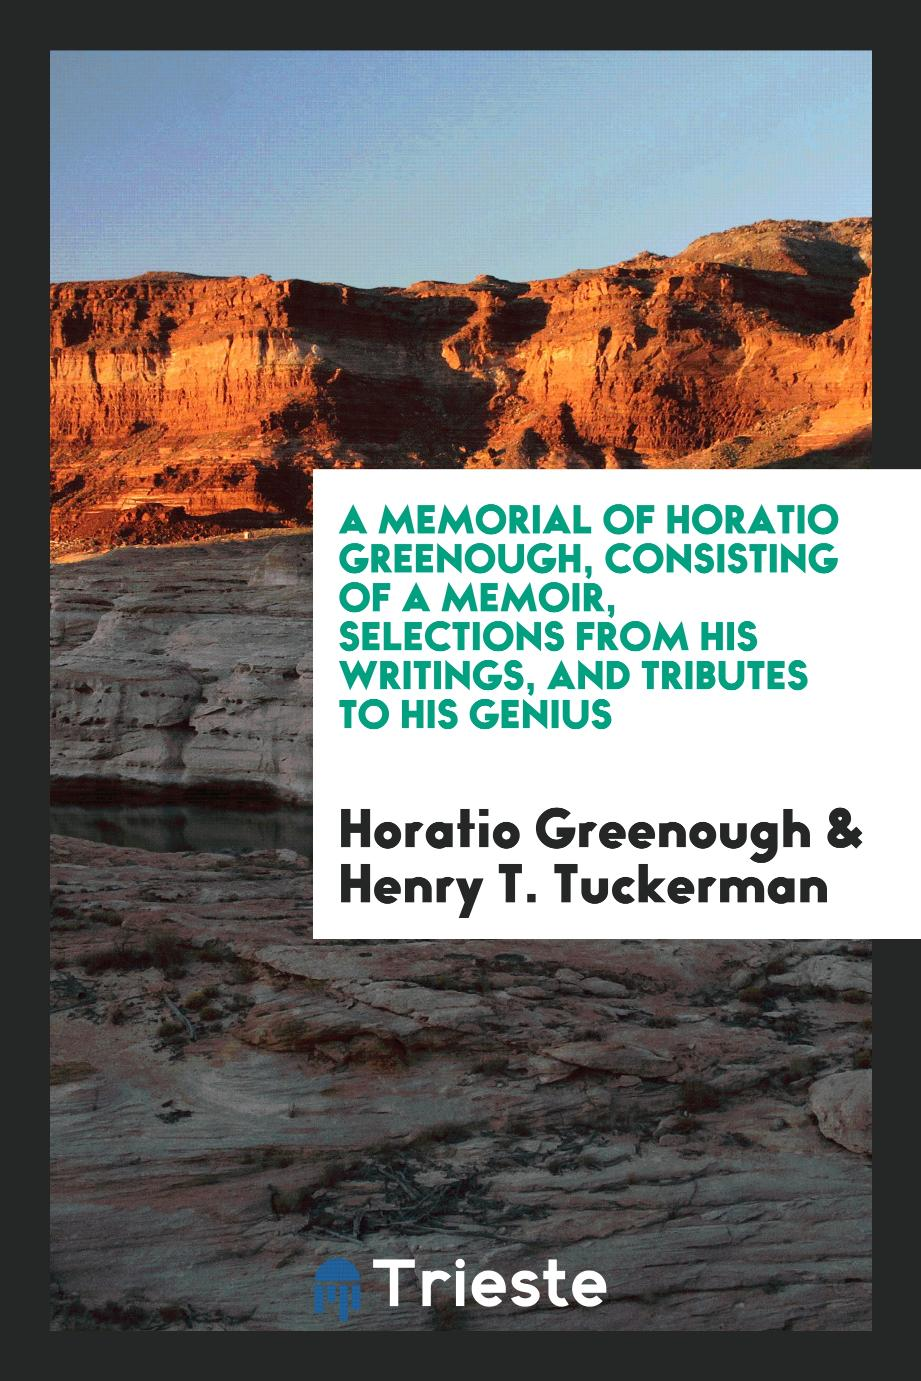 A Memorial of Horatio Greenough, Consisting of a Memoir, Selections from His Writings, and Tributes to His Genius